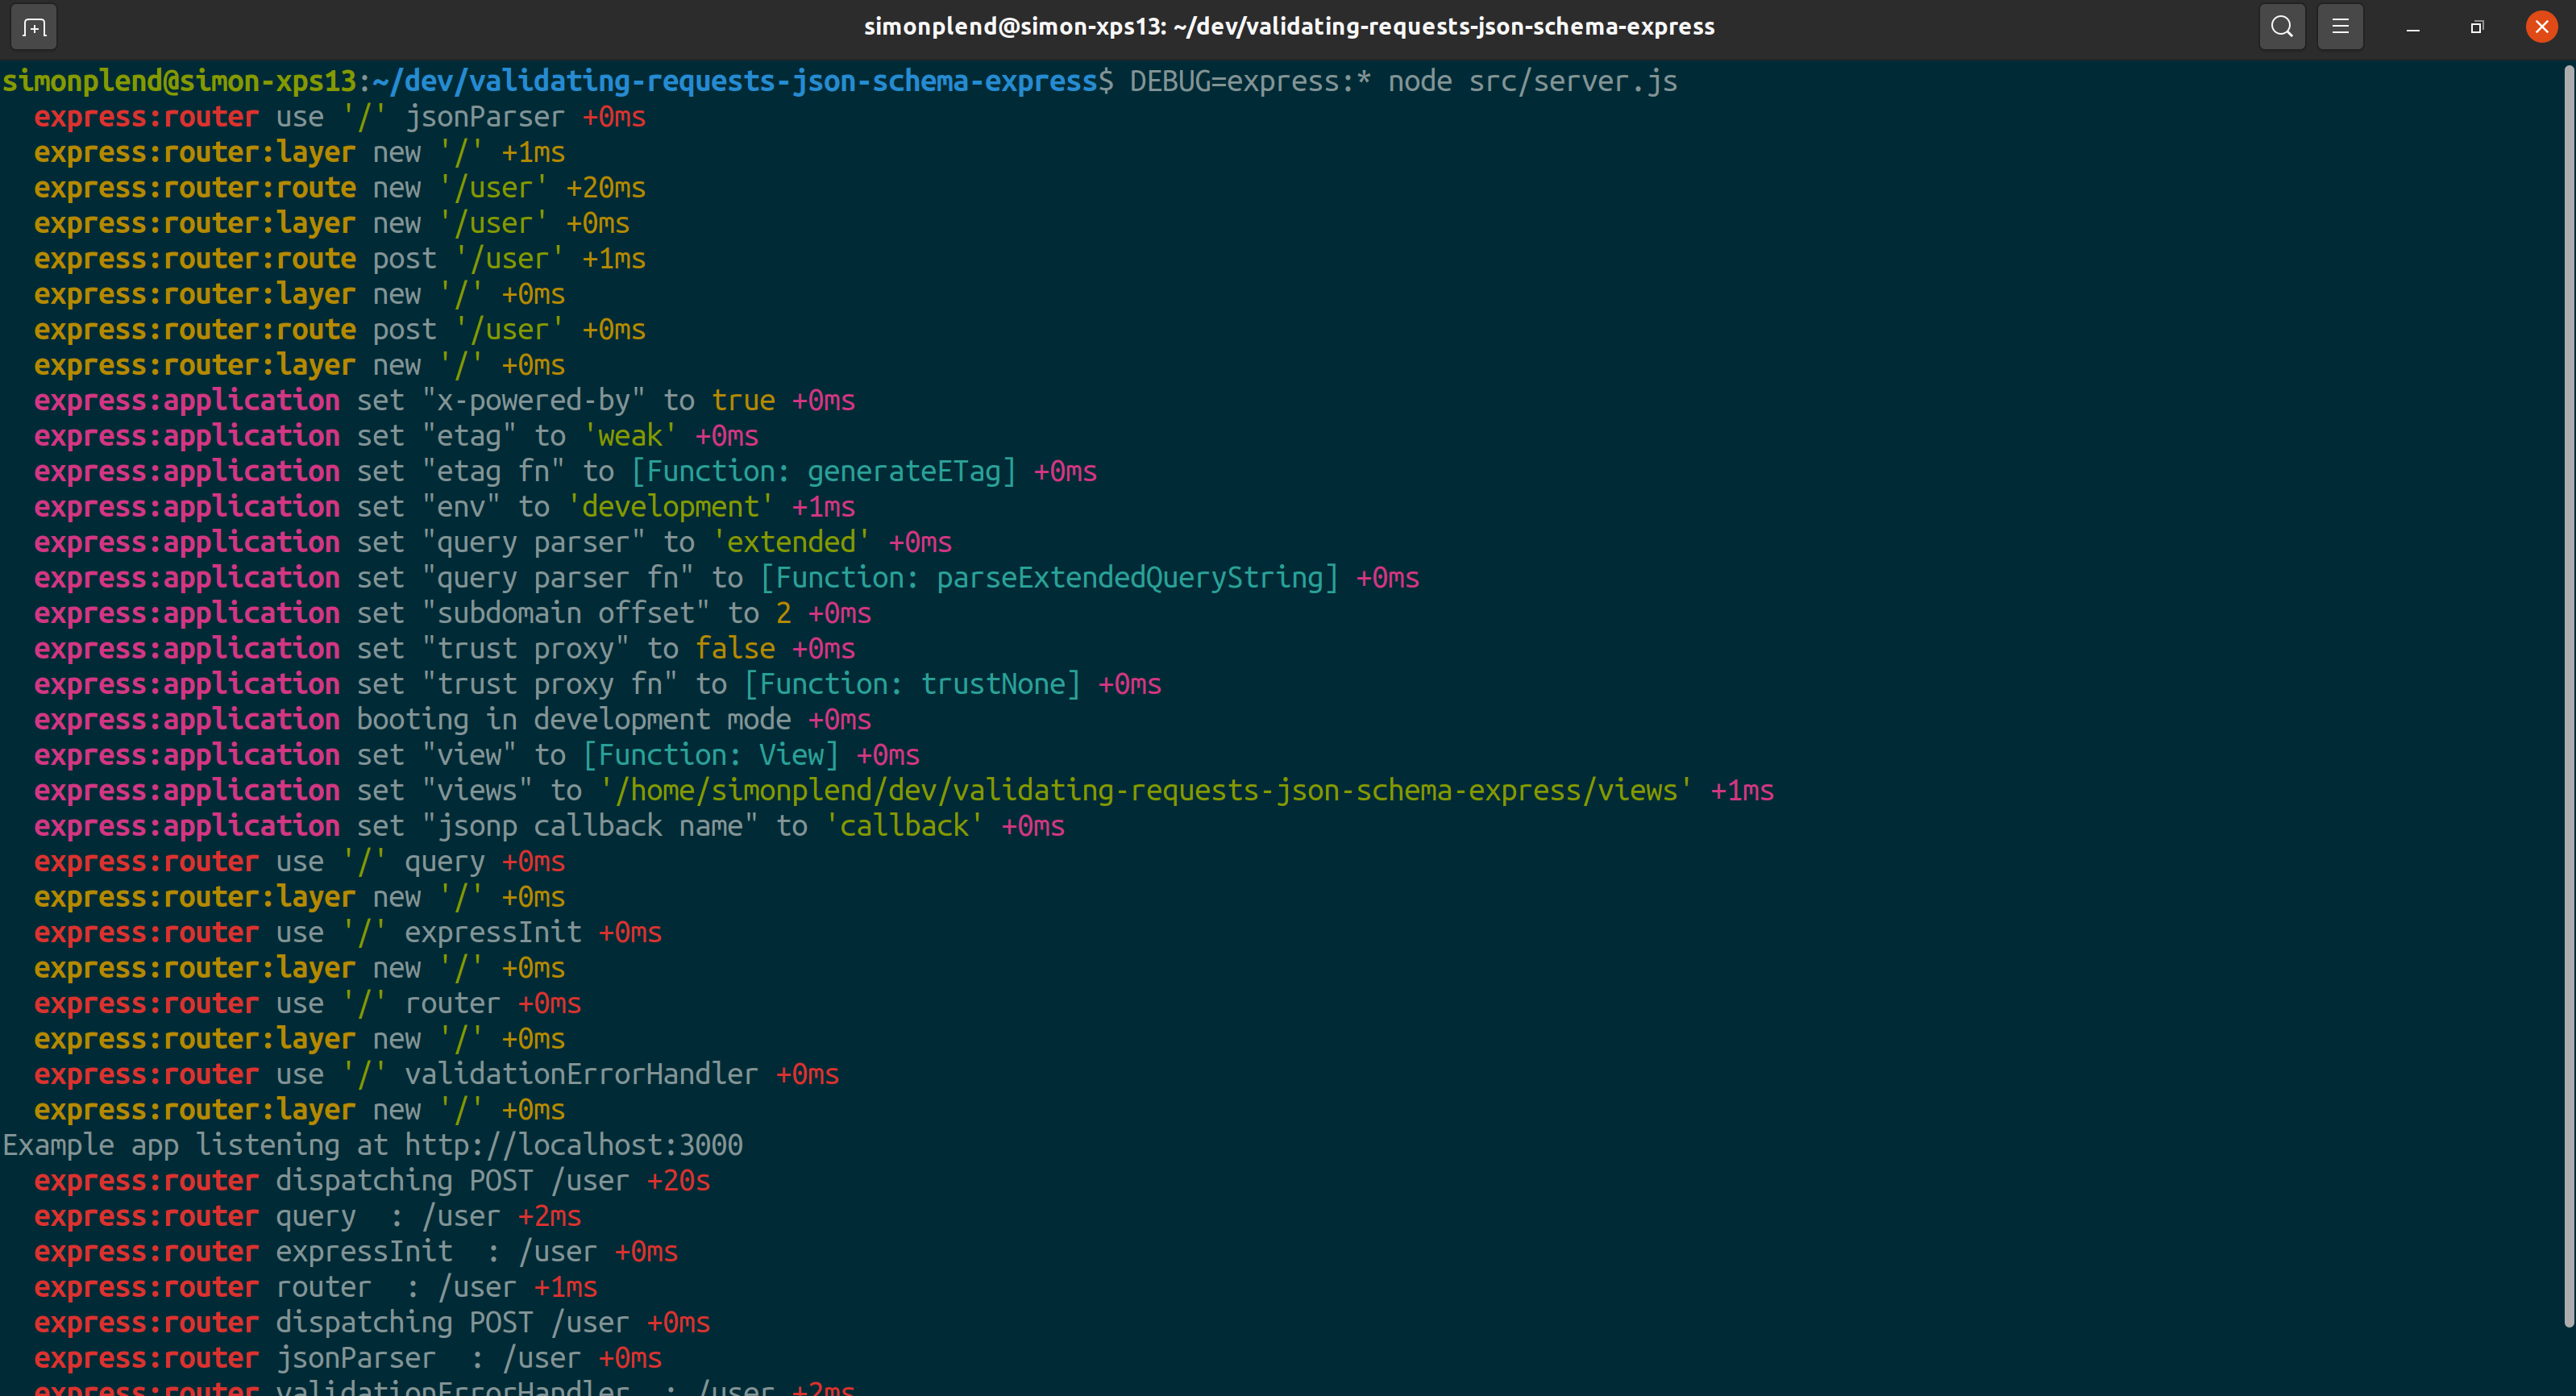 Screenshot of debug output from an Express application in a terminal